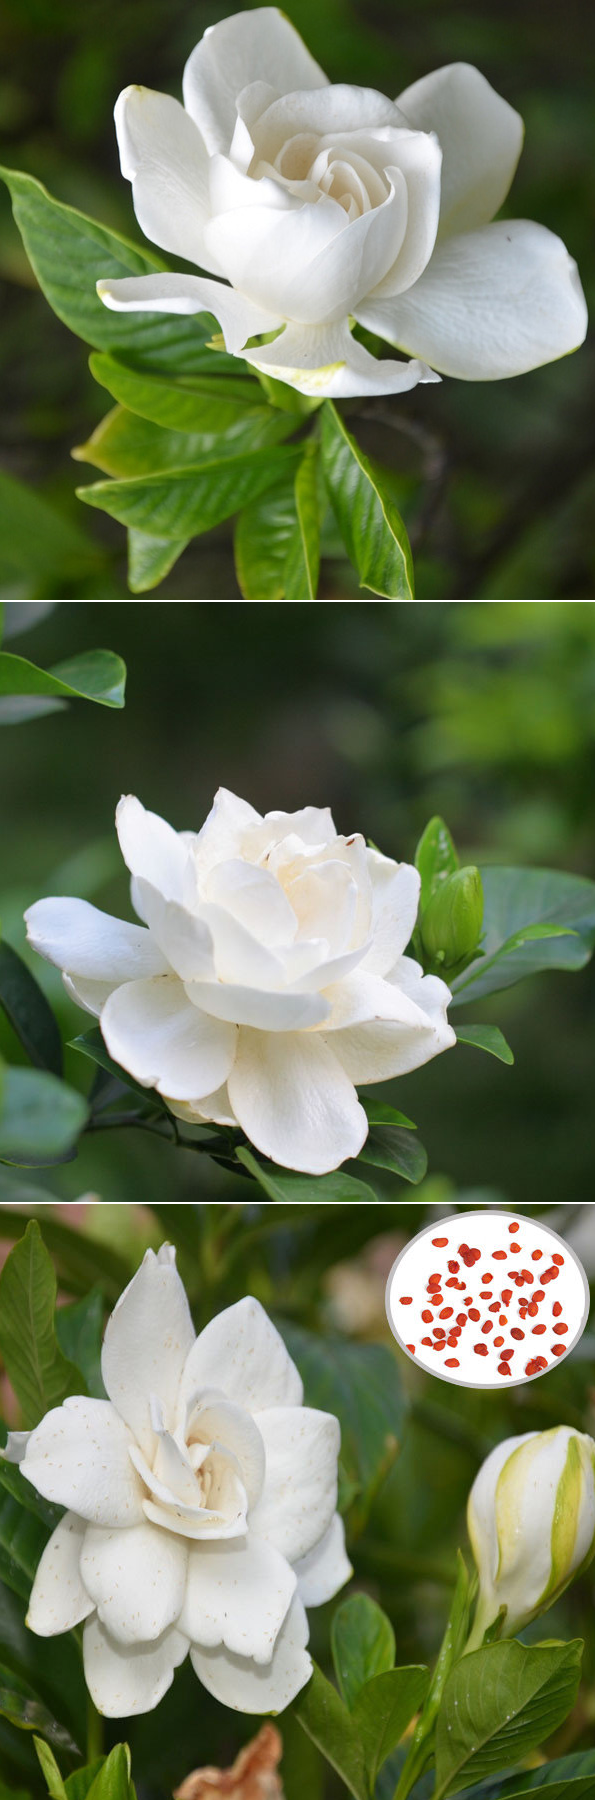 White Gardenia Seeds White Gardenia Flowers Beautiful Flowers